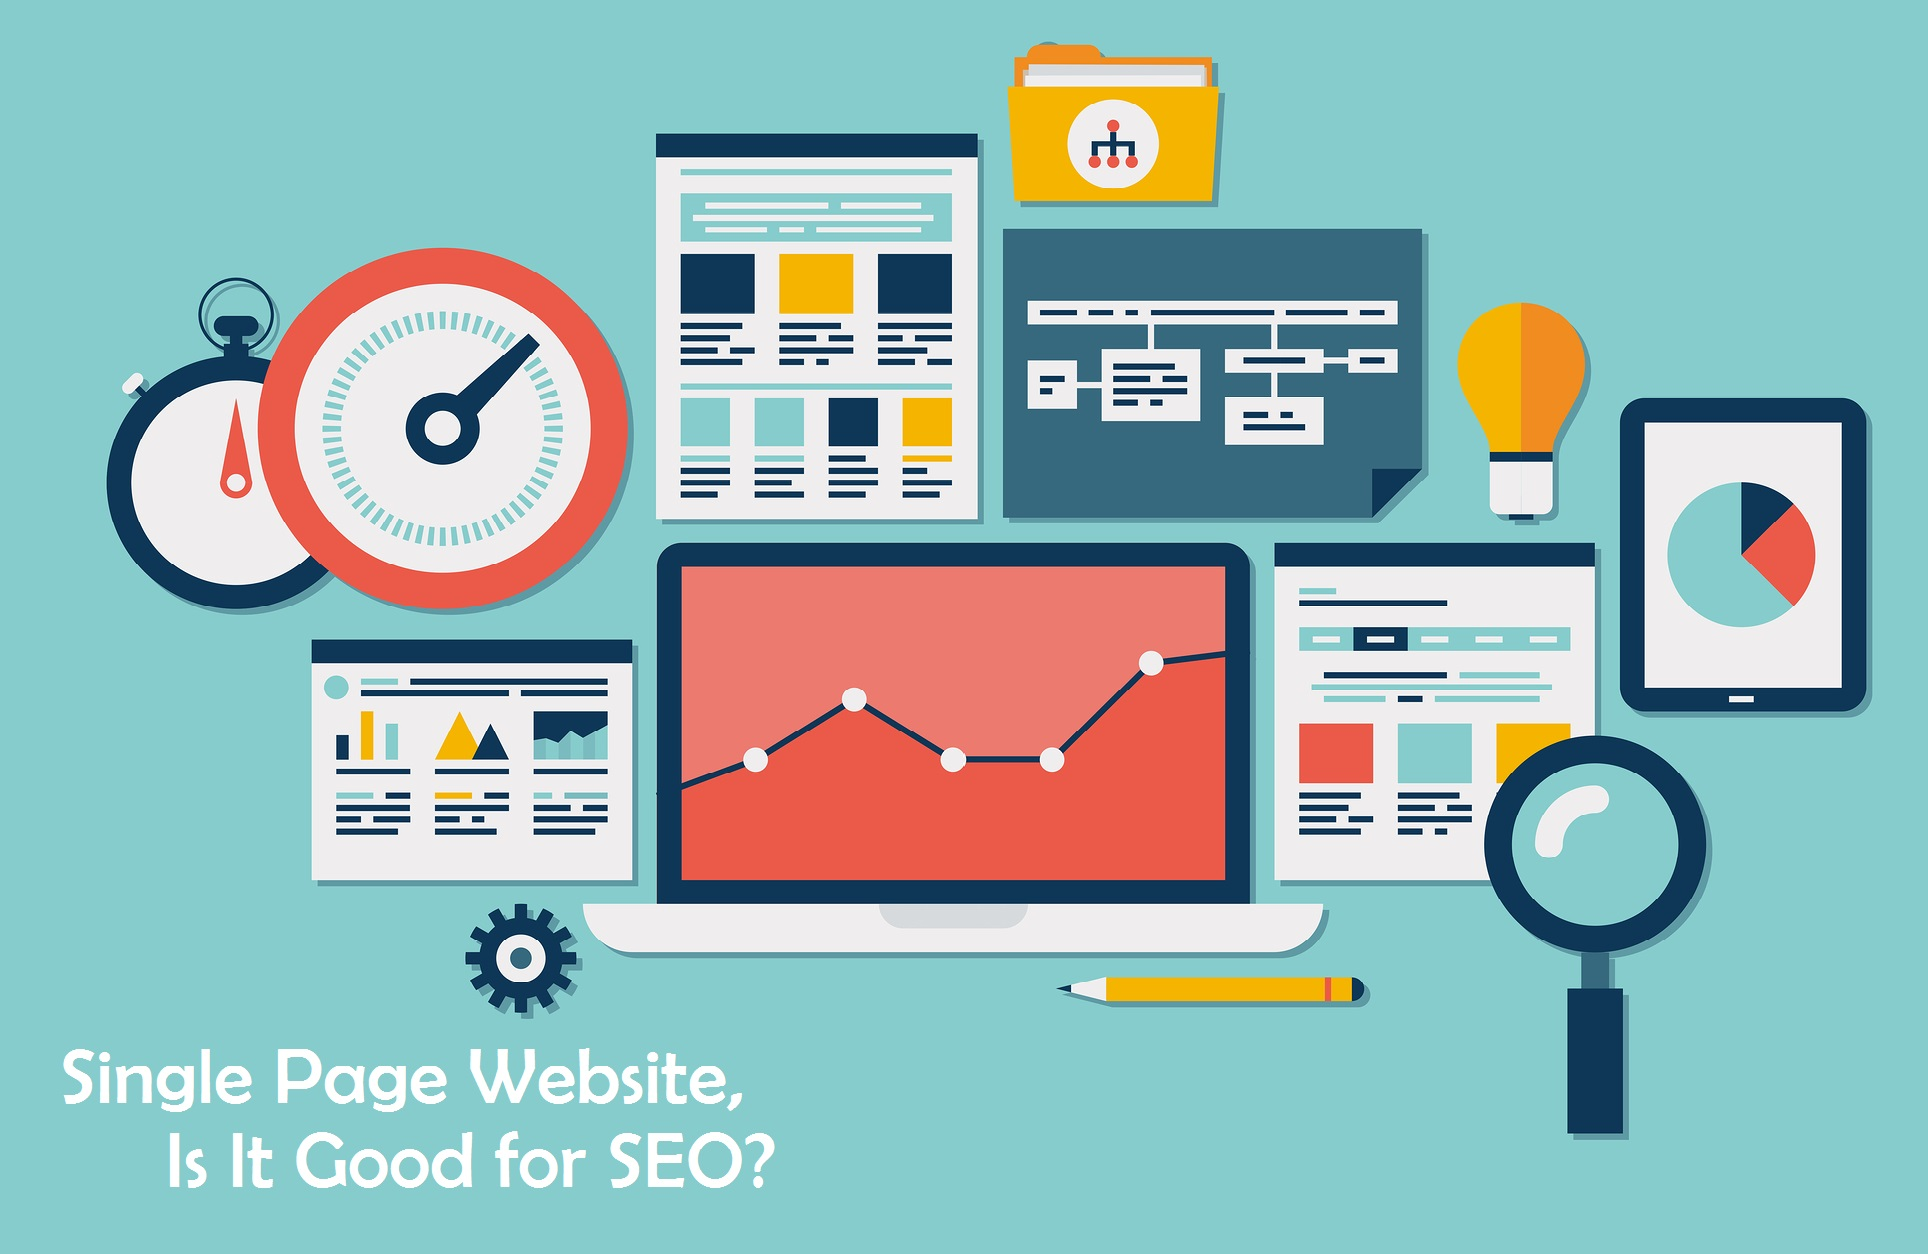 Single Page Website, Is It Good For SEO?